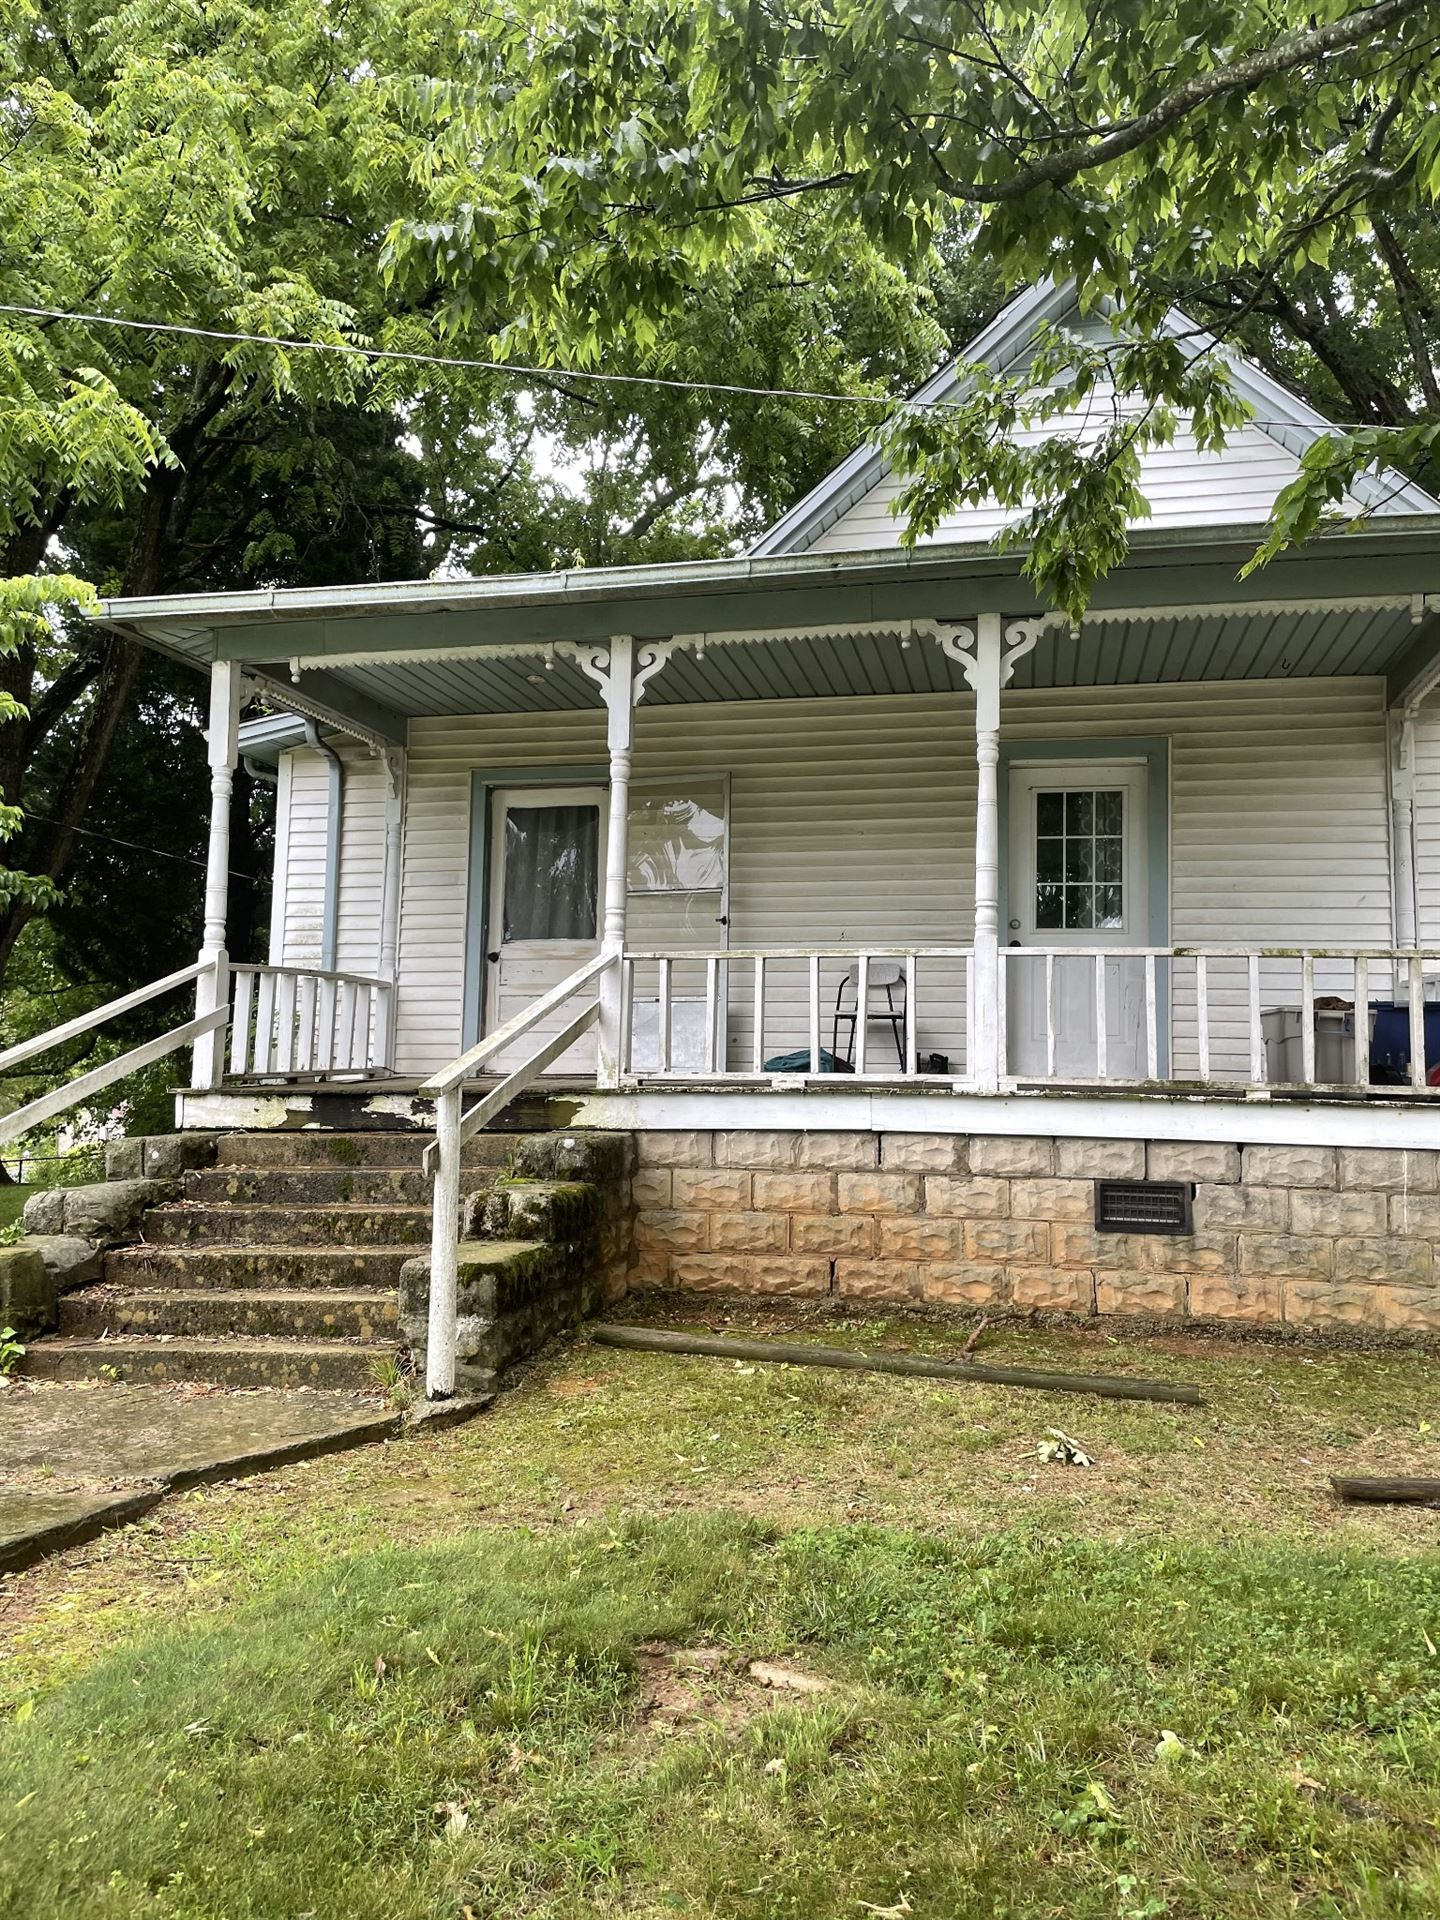 702 Perry Dr, Springfield, TN 37172 - MLS#: 2274448